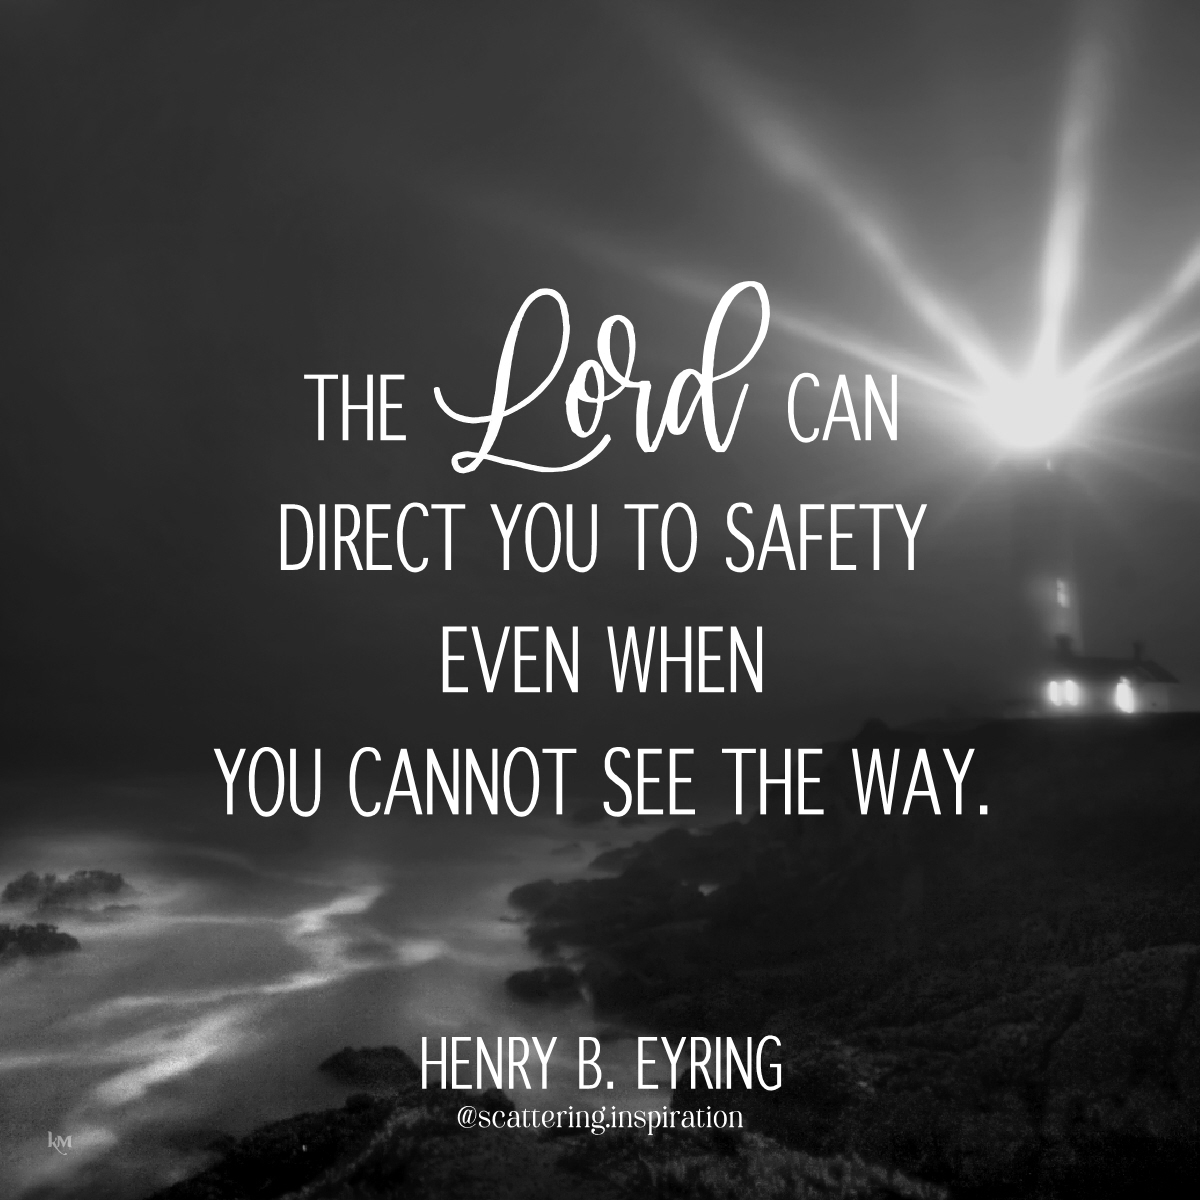 the Lord can direct